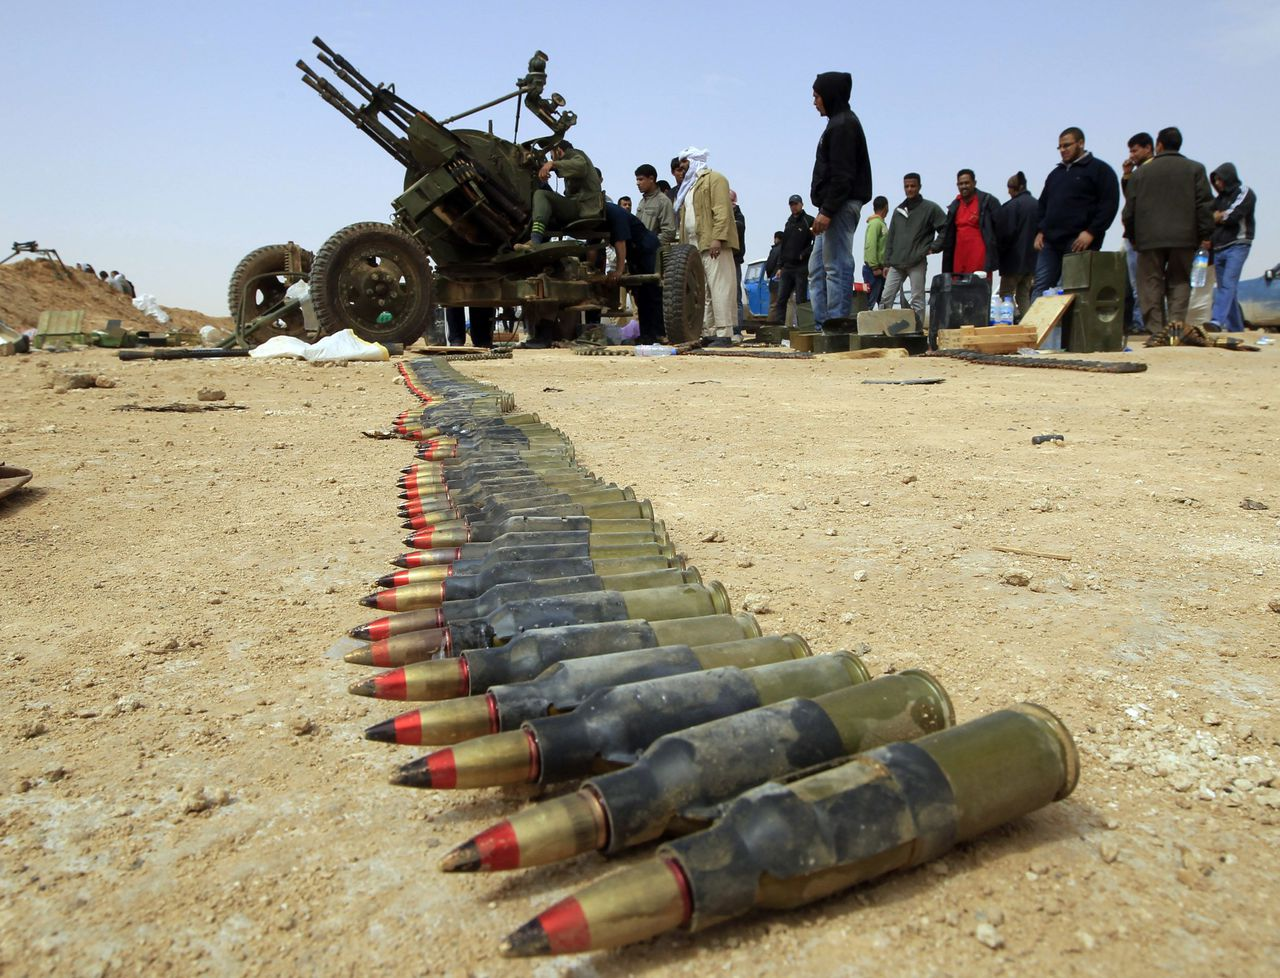 Rebels stand around an antiaircraft weapon on the outskirts of Ajdabiya, on the road leading to Brega, March 2, 2011. REUTERS/Goran Tomasevic (LIBYA - Tags: POLITICS CIVIL UNREST MILITARY)